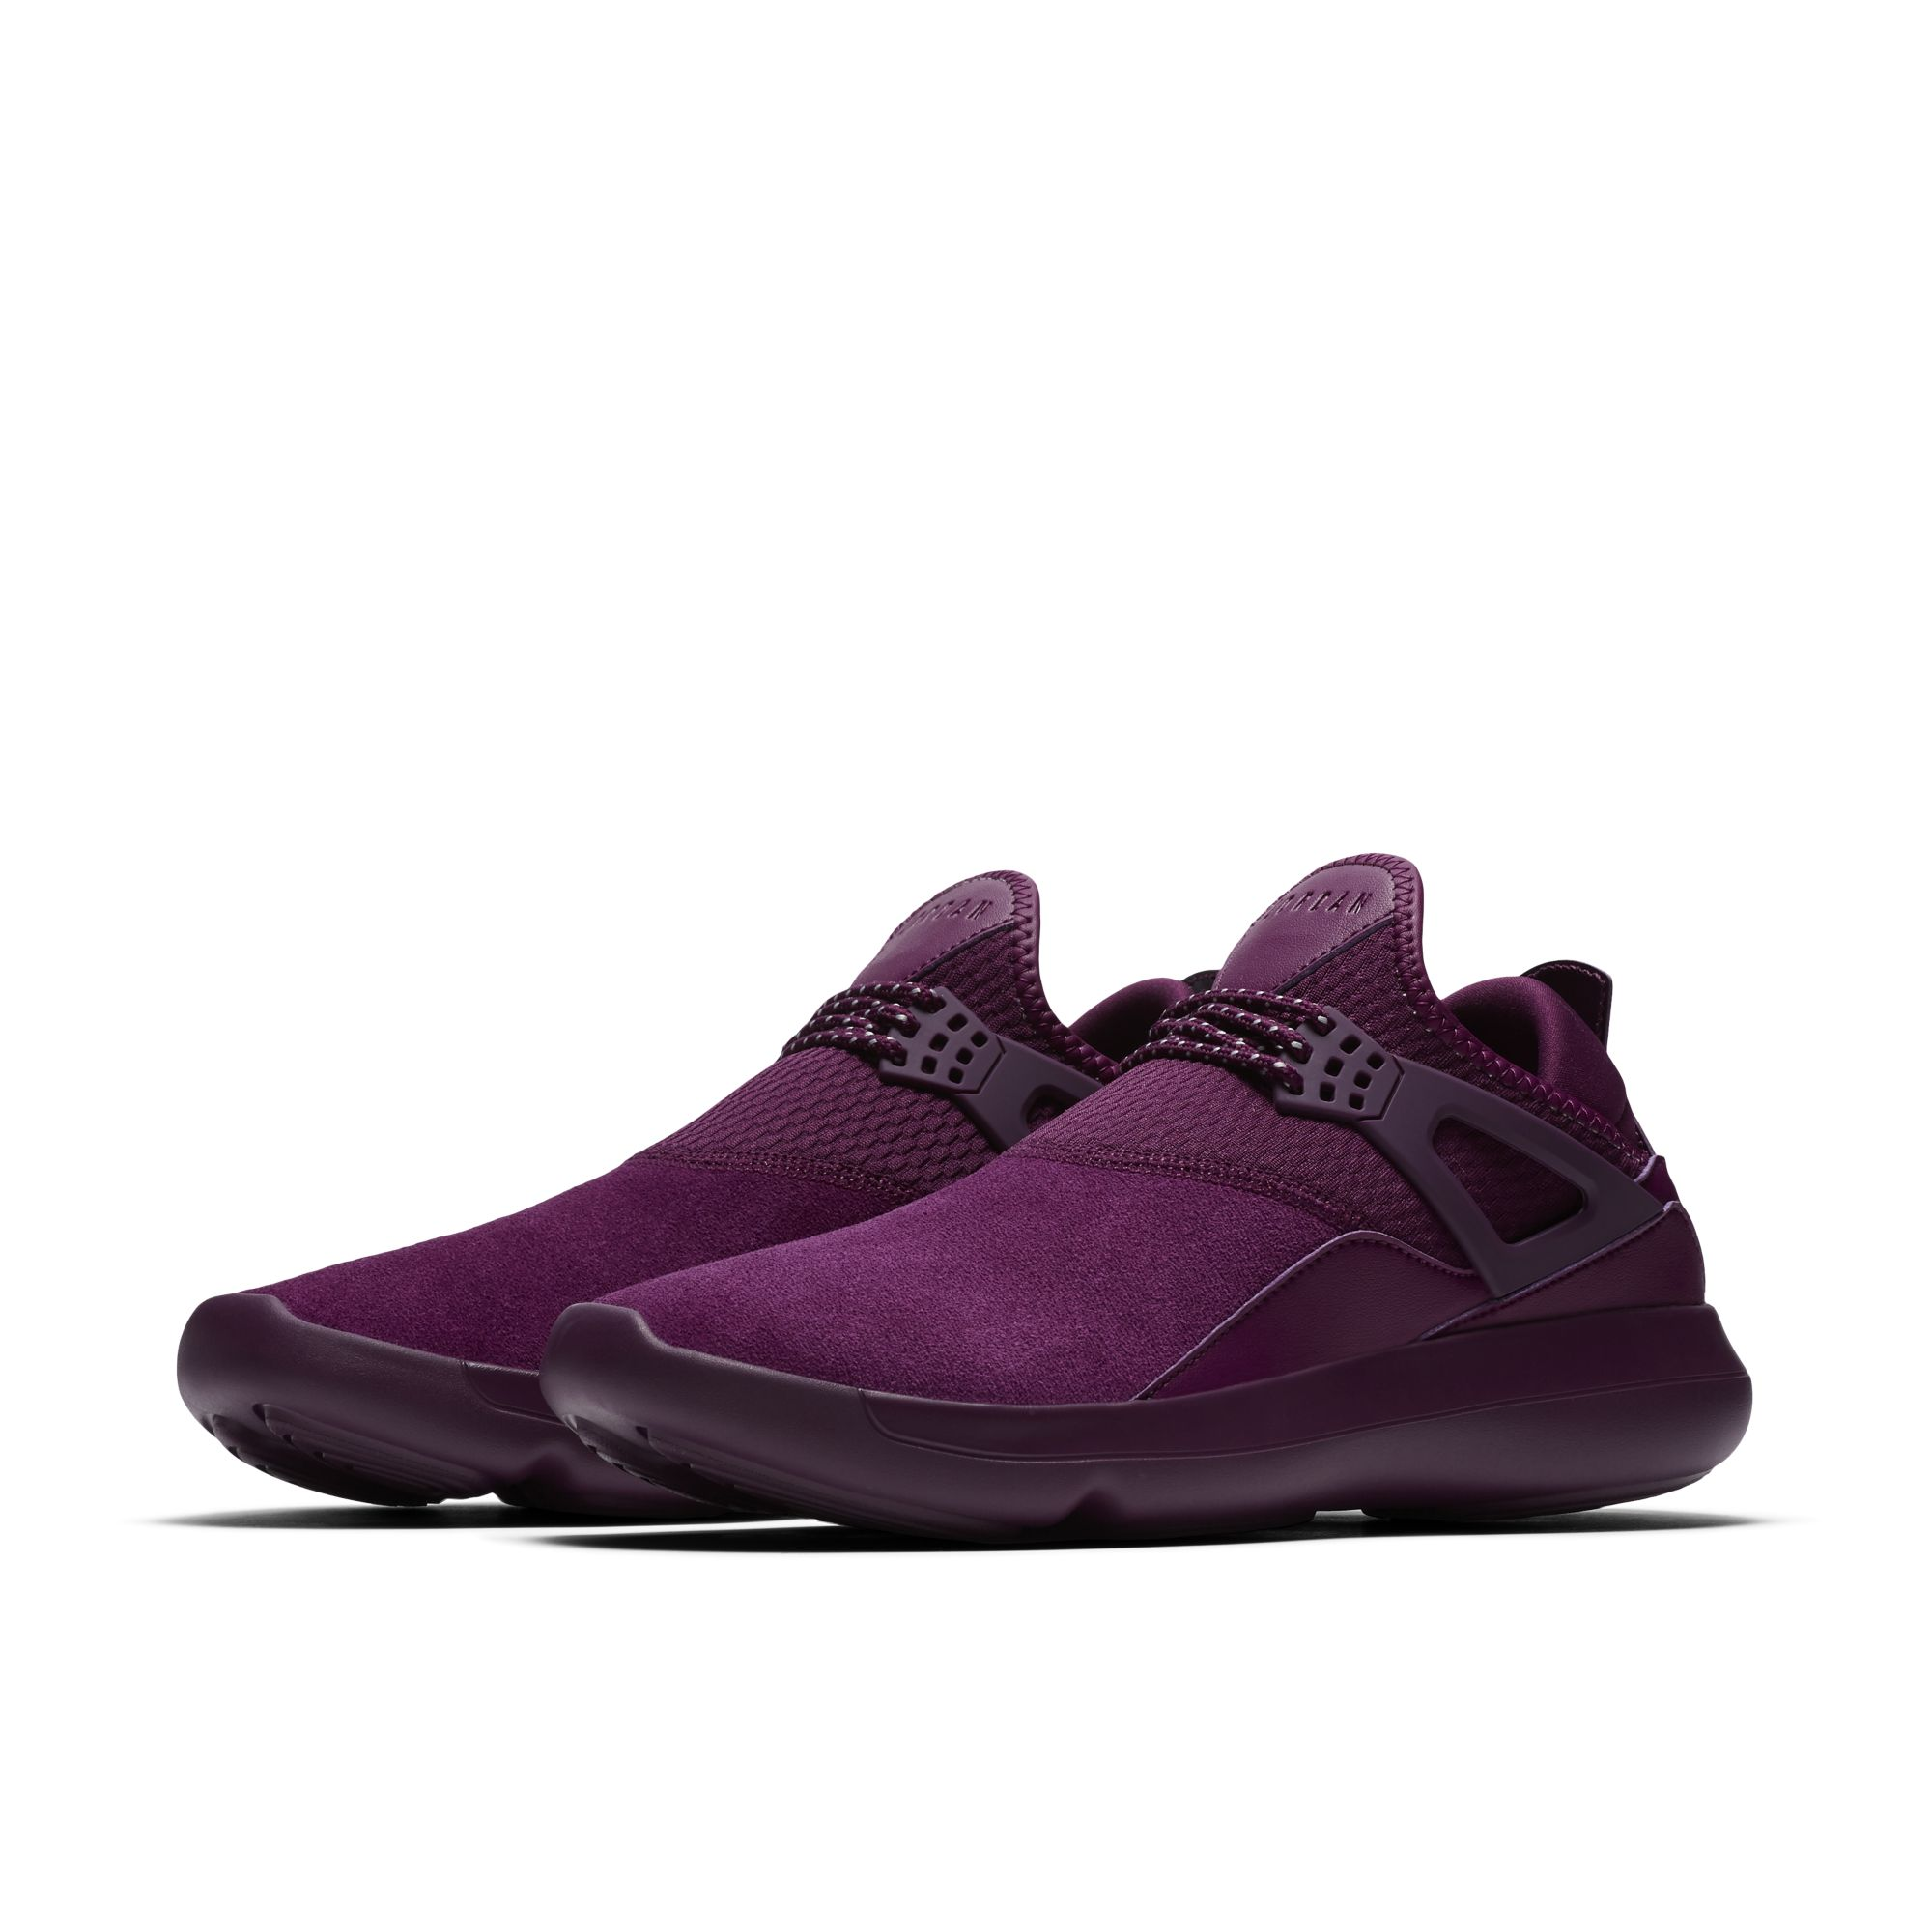 jordan fly 89 purple 1